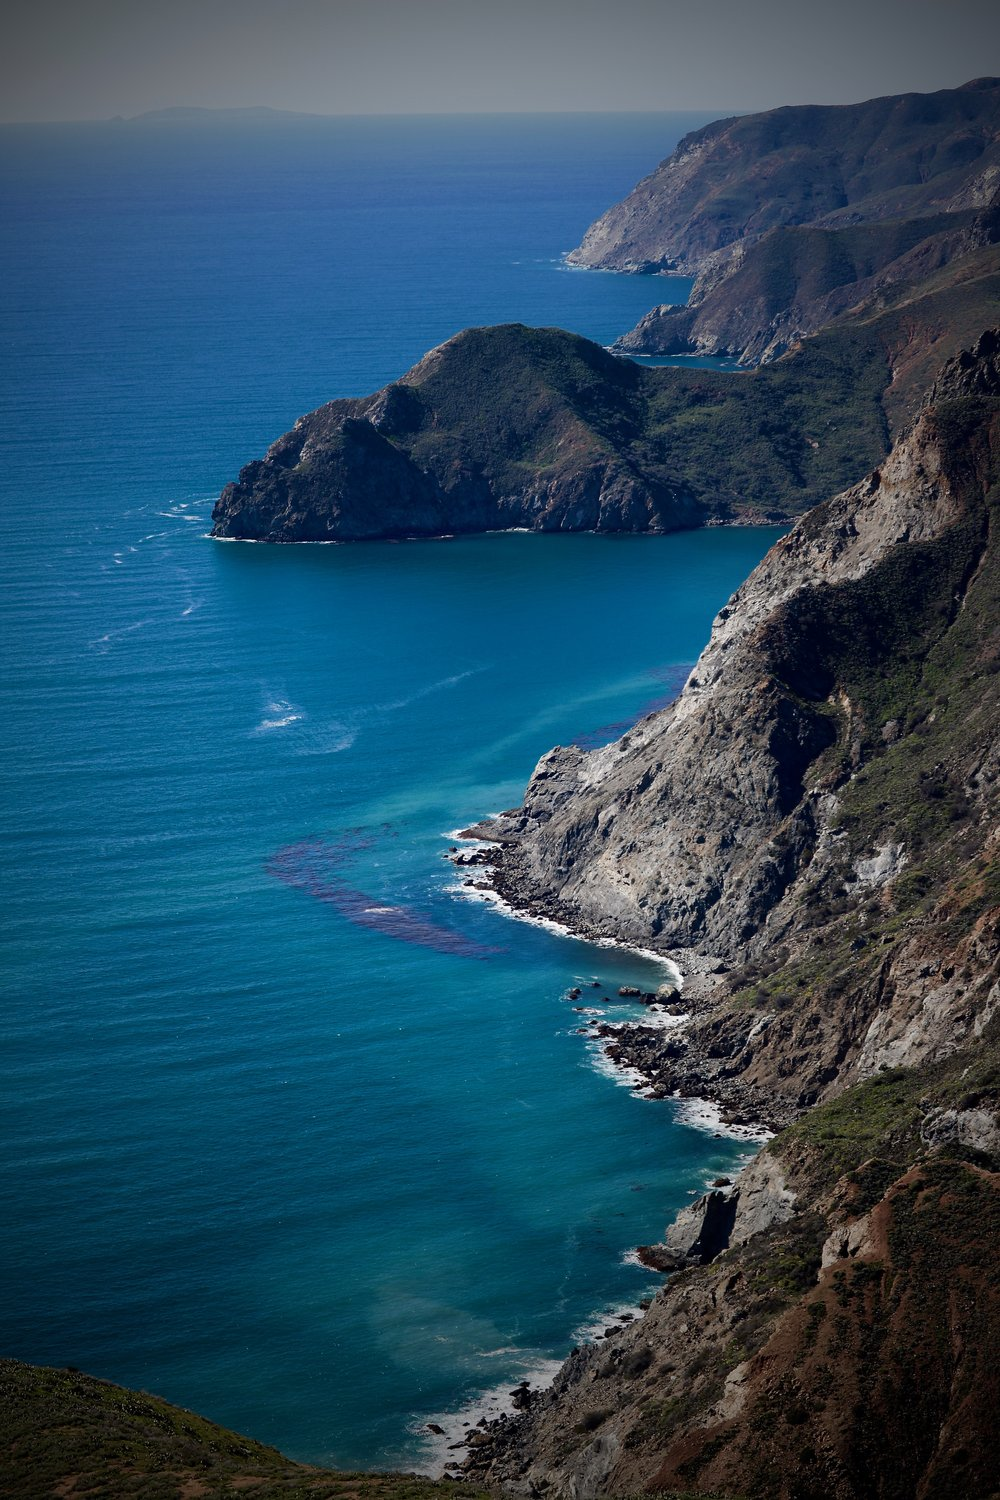 Windward, Catalina Island, California, USA, The Trans-Catalina Trail